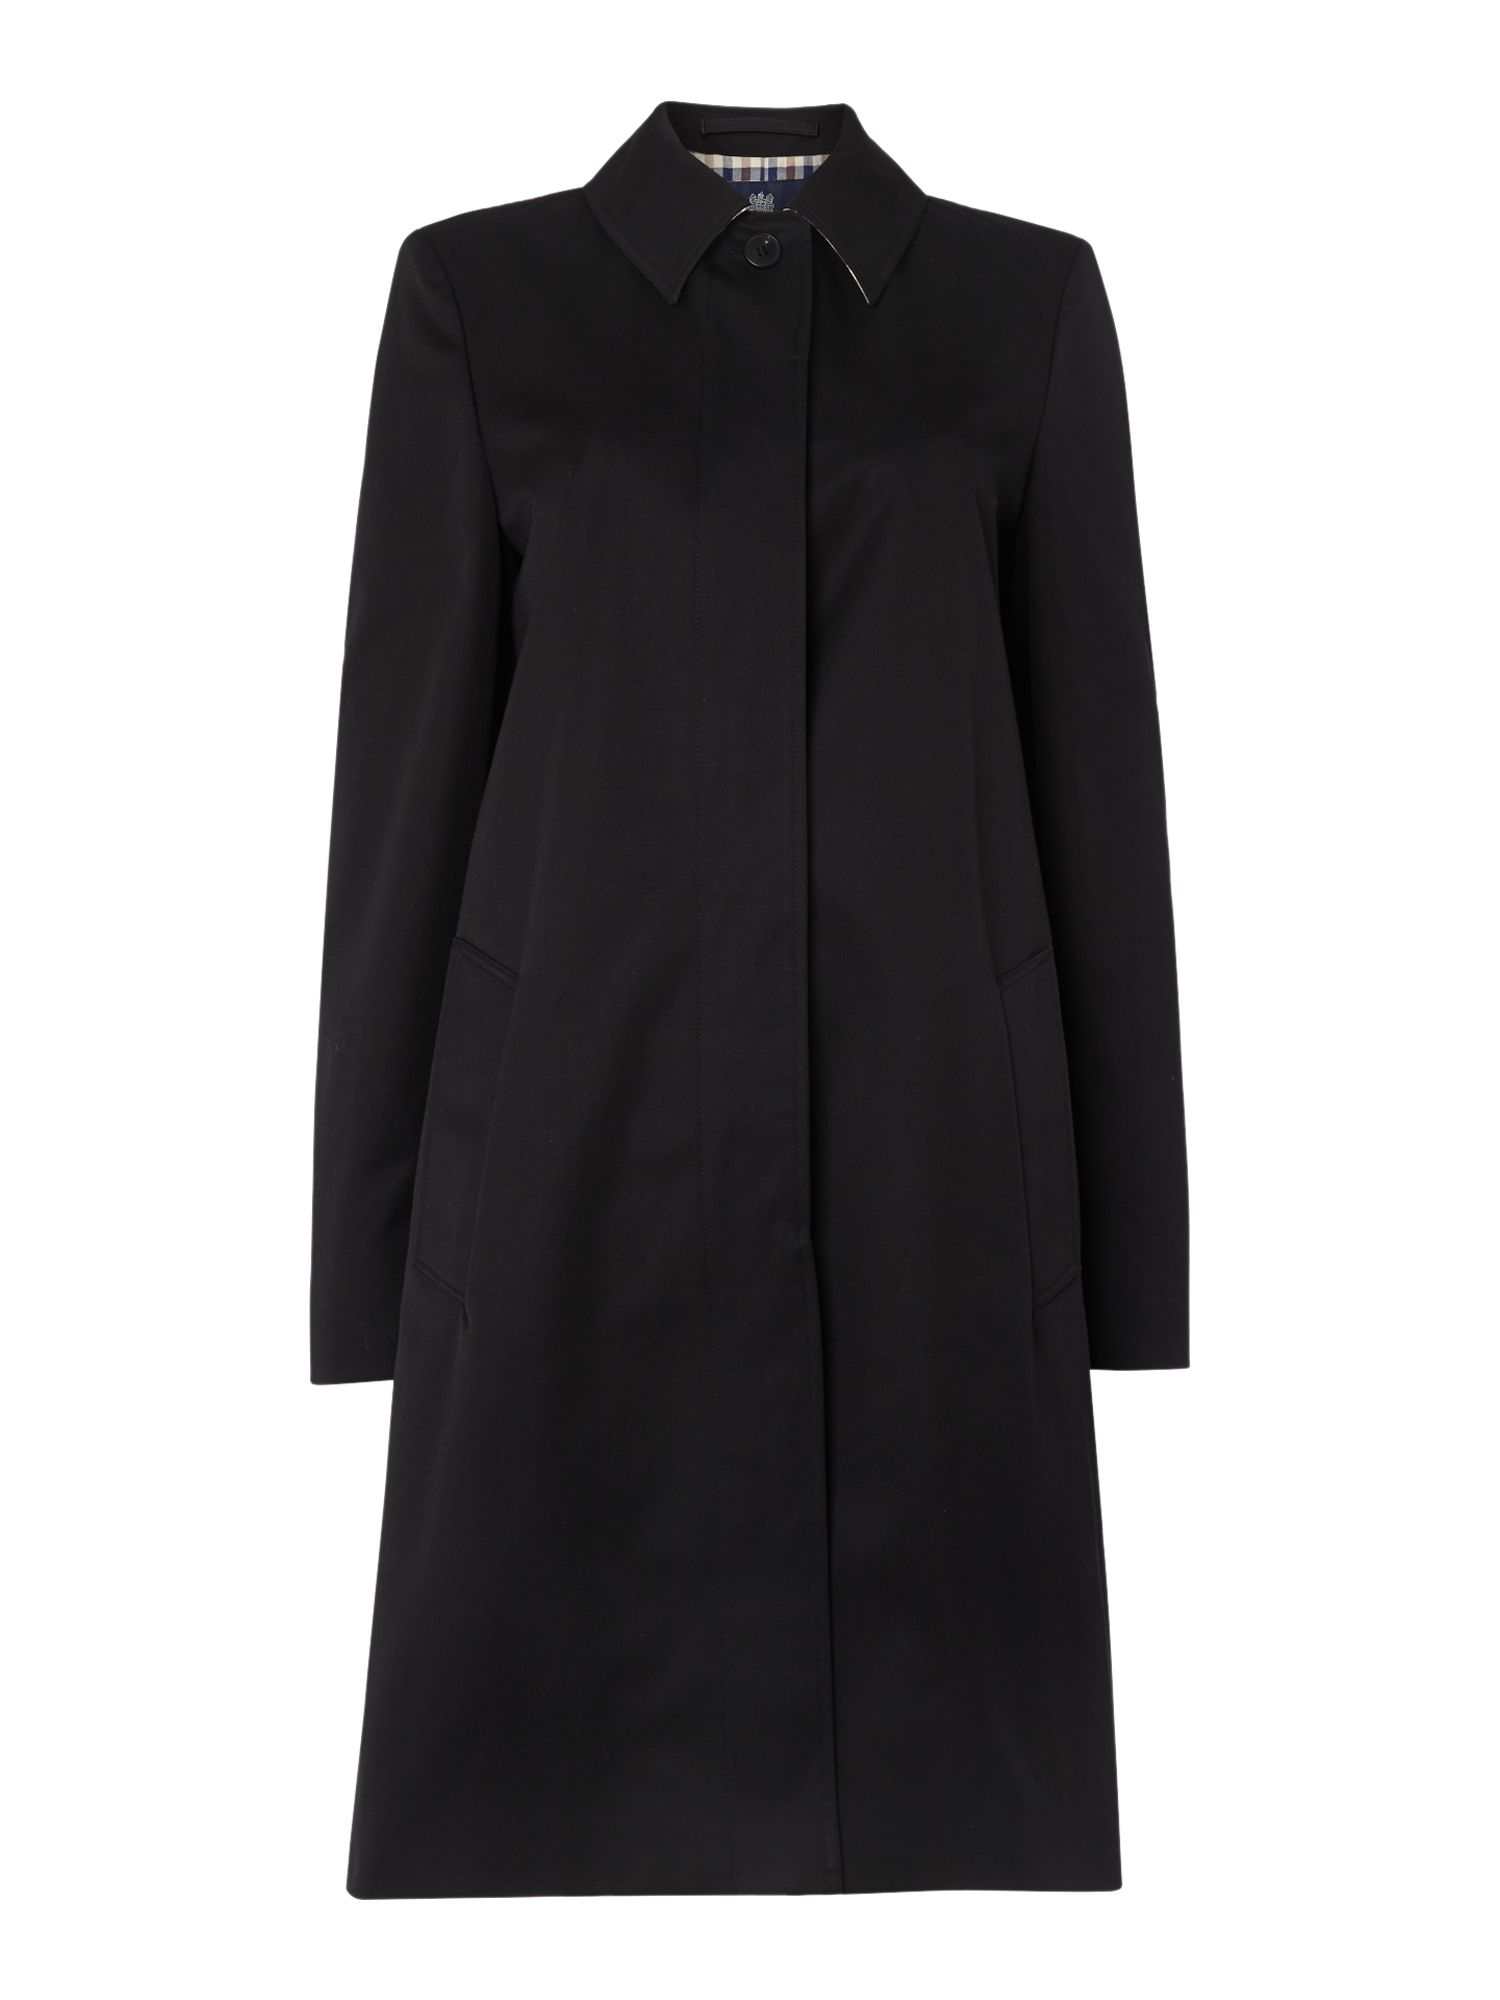 Aquascutum Dulwich Raincoat, Black